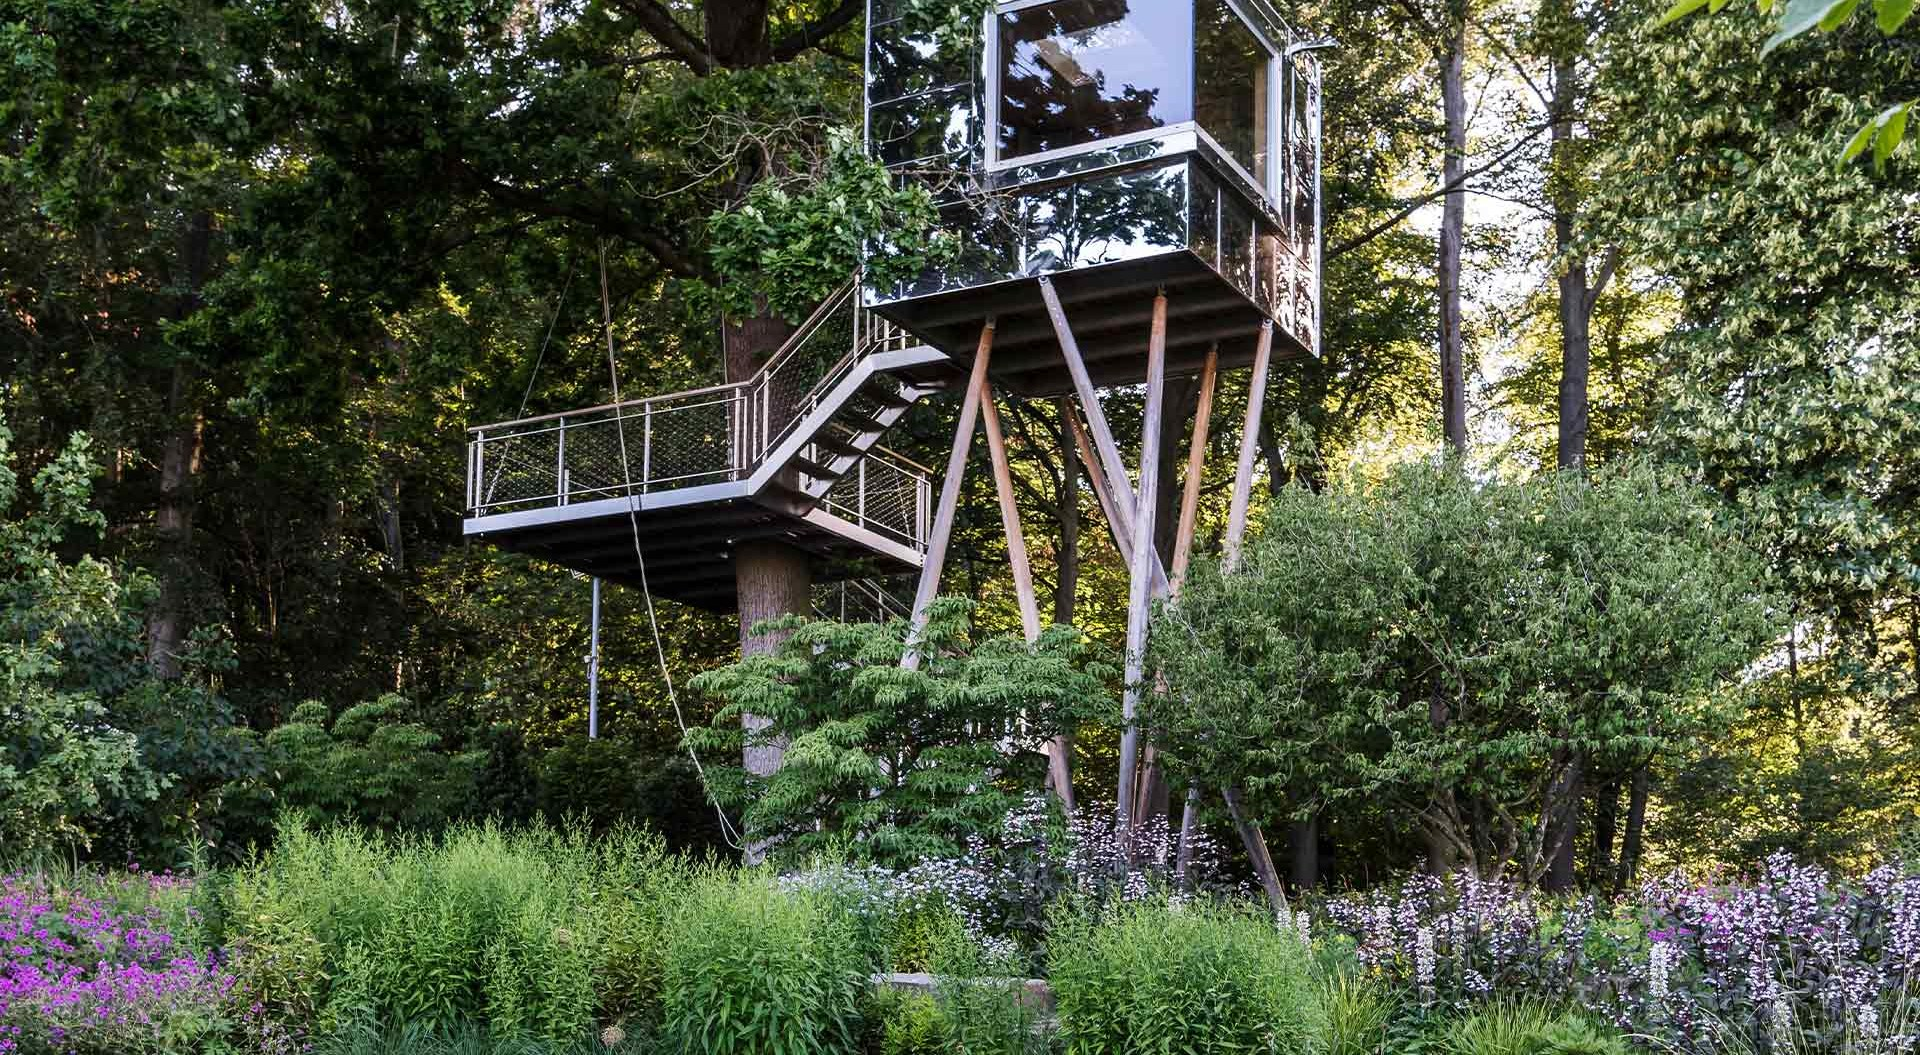 Modern glass tree house between trees, flowers and bushes